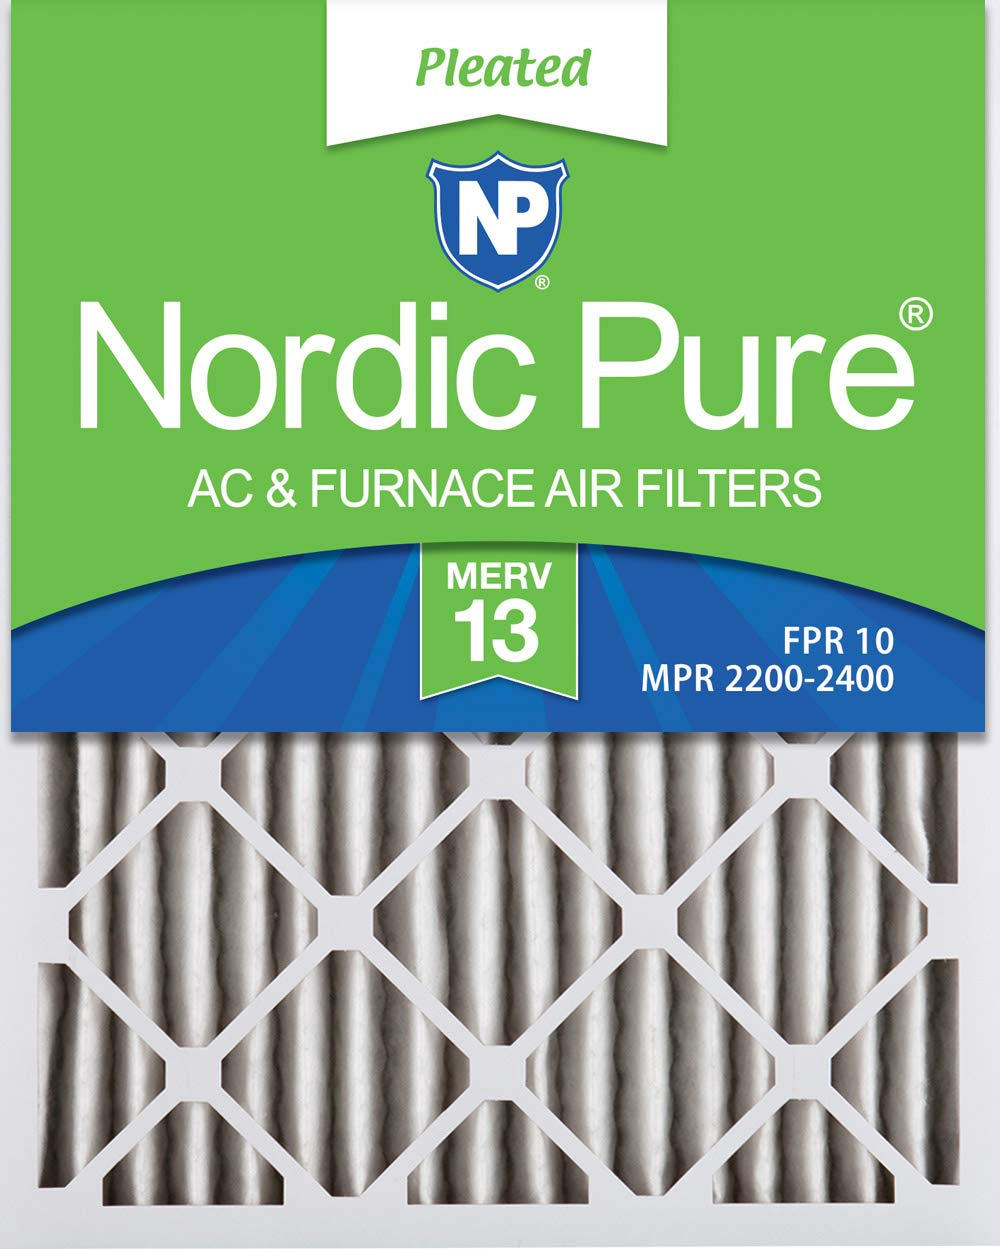 Nordic Pure 8x20x2 Exact MERV 13 Pleated AC Furnace Air Filters 4 Pack